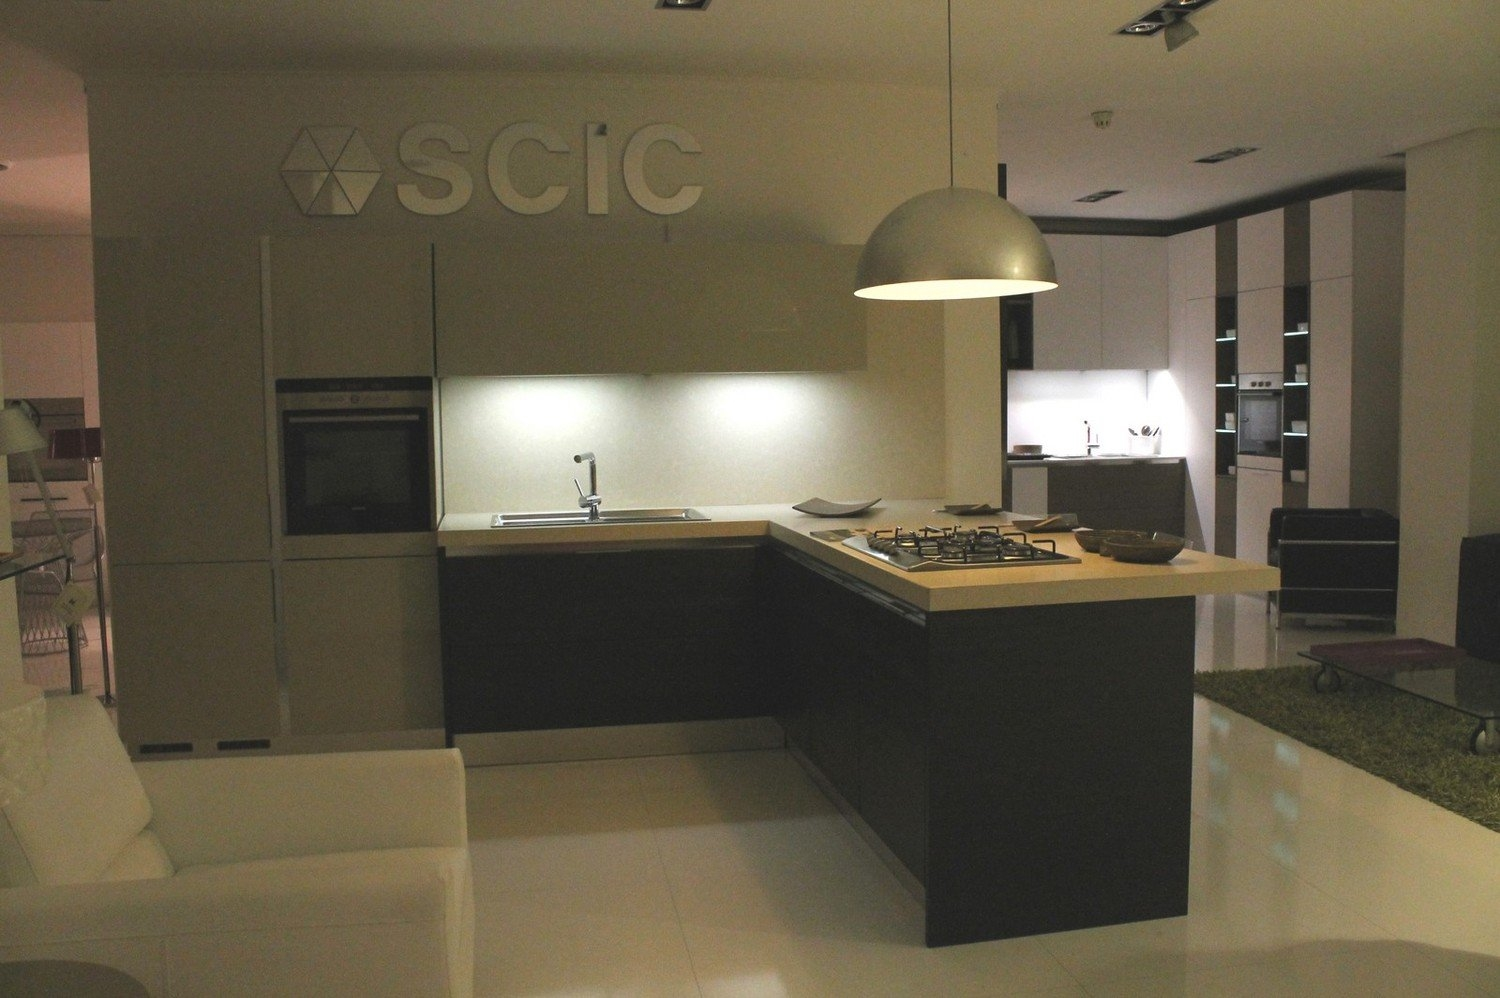 Awesome Cucine Outlet Milano Ideas - bakeroffroad.us - bakeroffroad.us